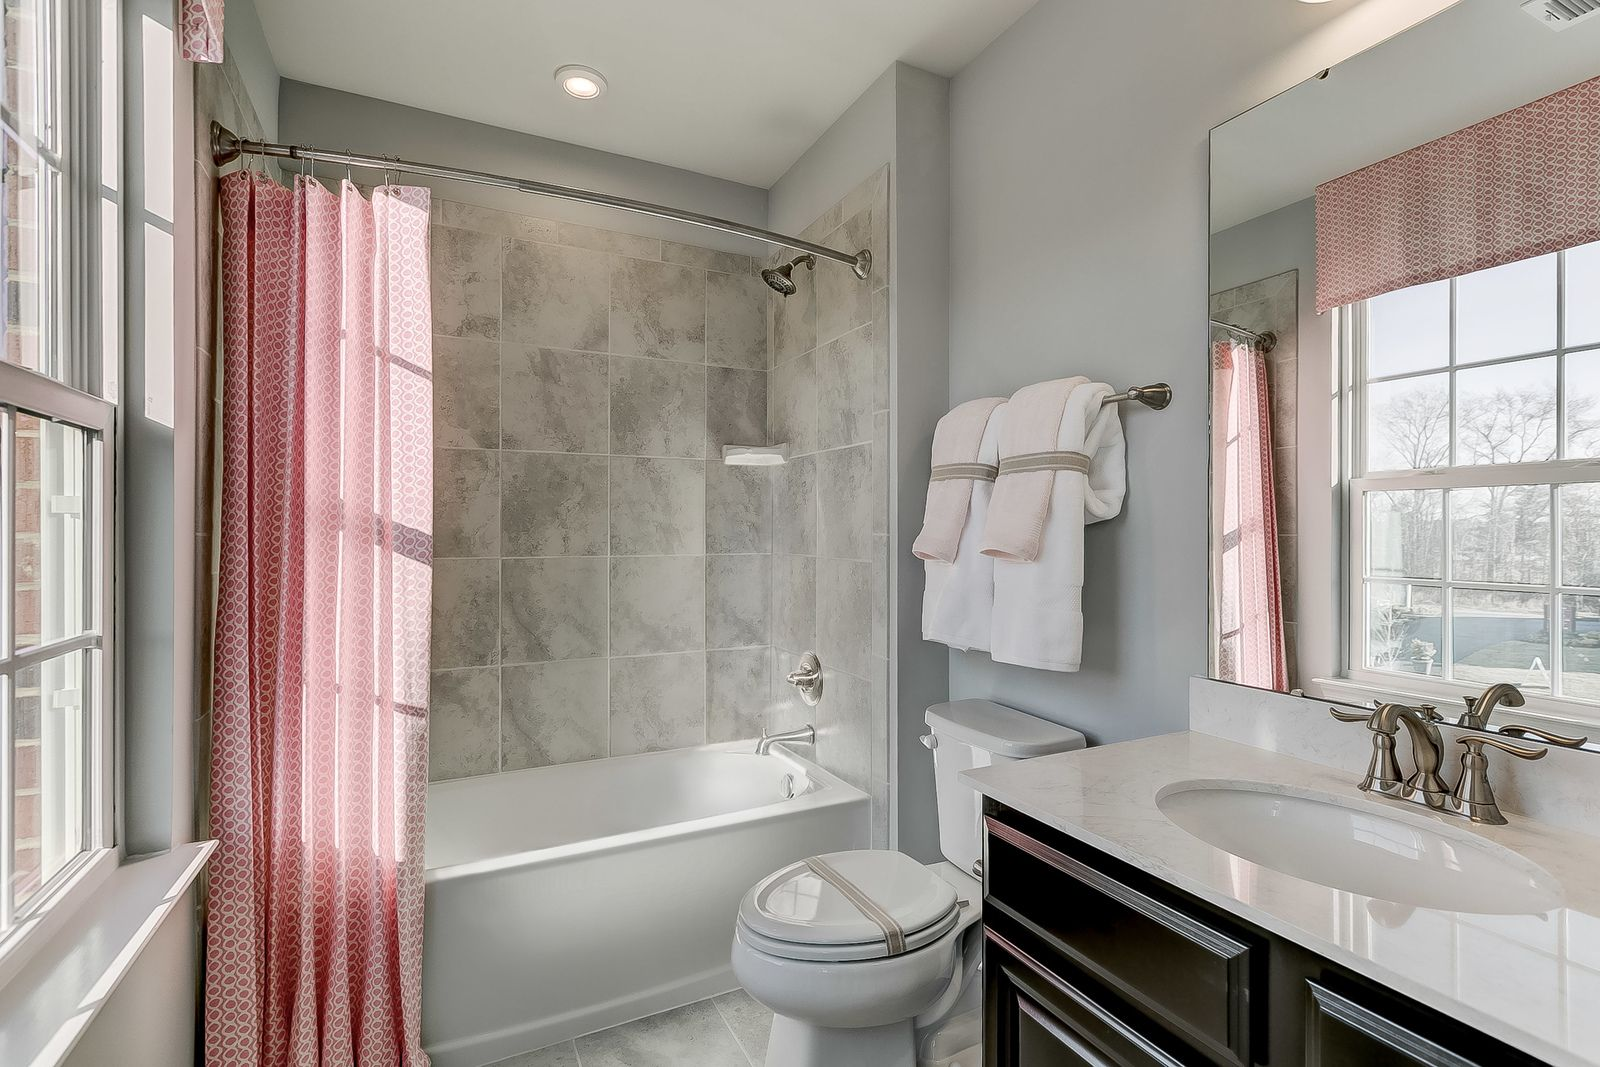 Bathroom featured in the Saint Lawrence By Ryan Homes in Philadelphia, PA